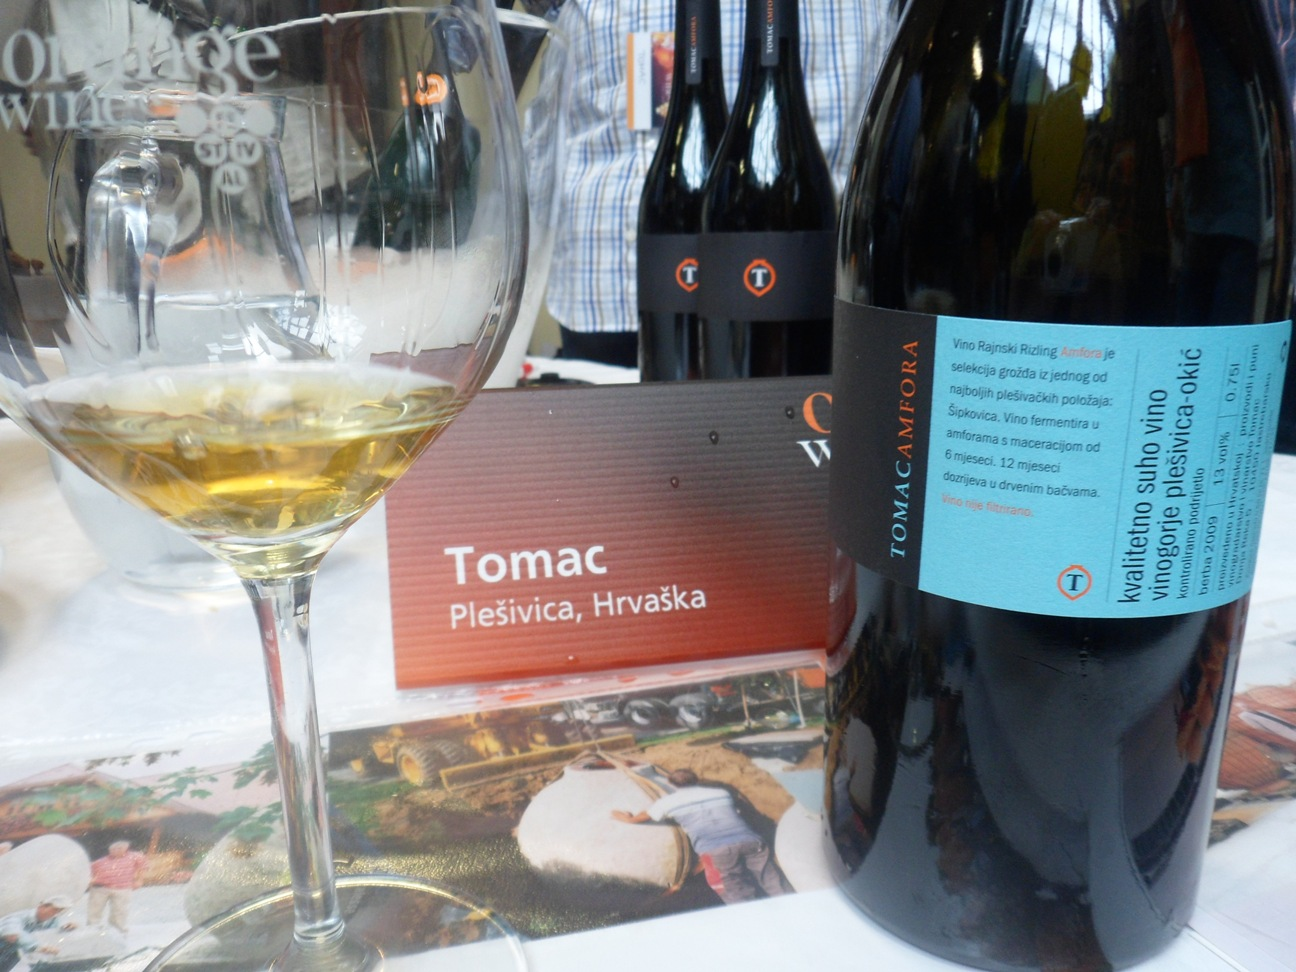 Riesling 2009 Tomac